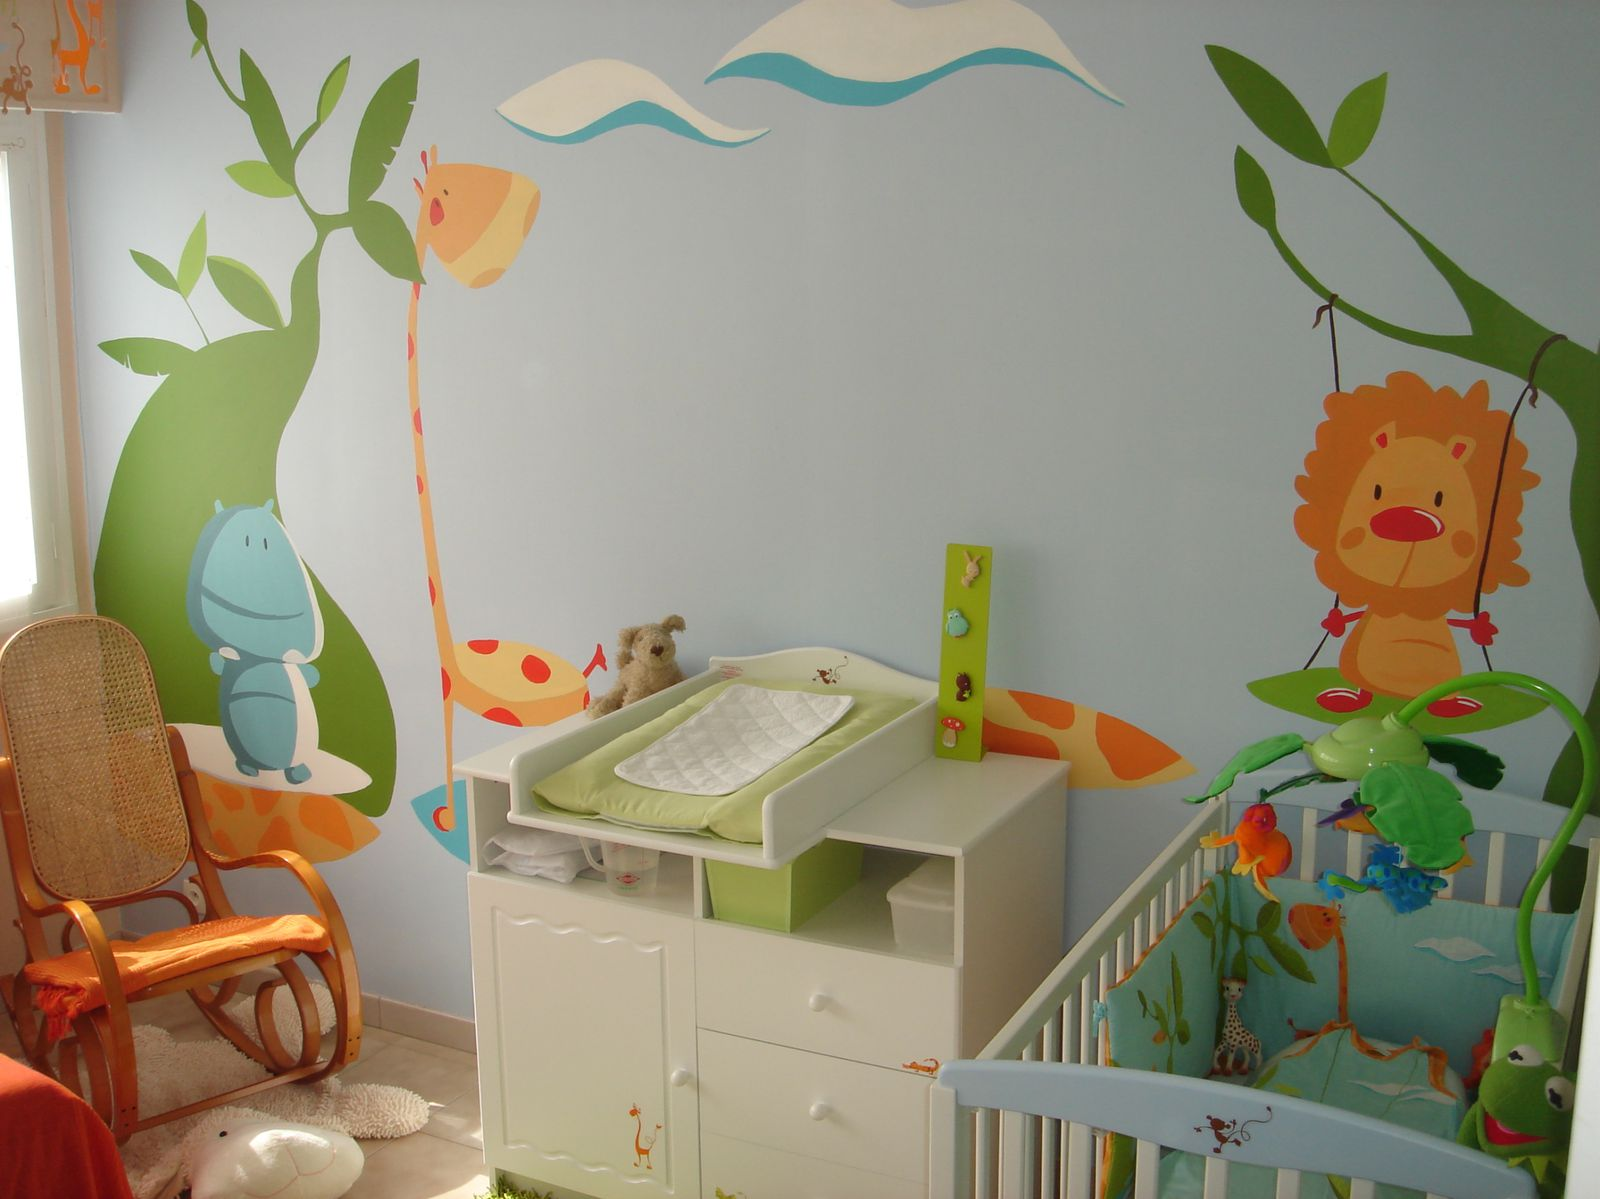 Photos bild galeria decoration murale chambre bebe - Decoration murale chambre bebe ...